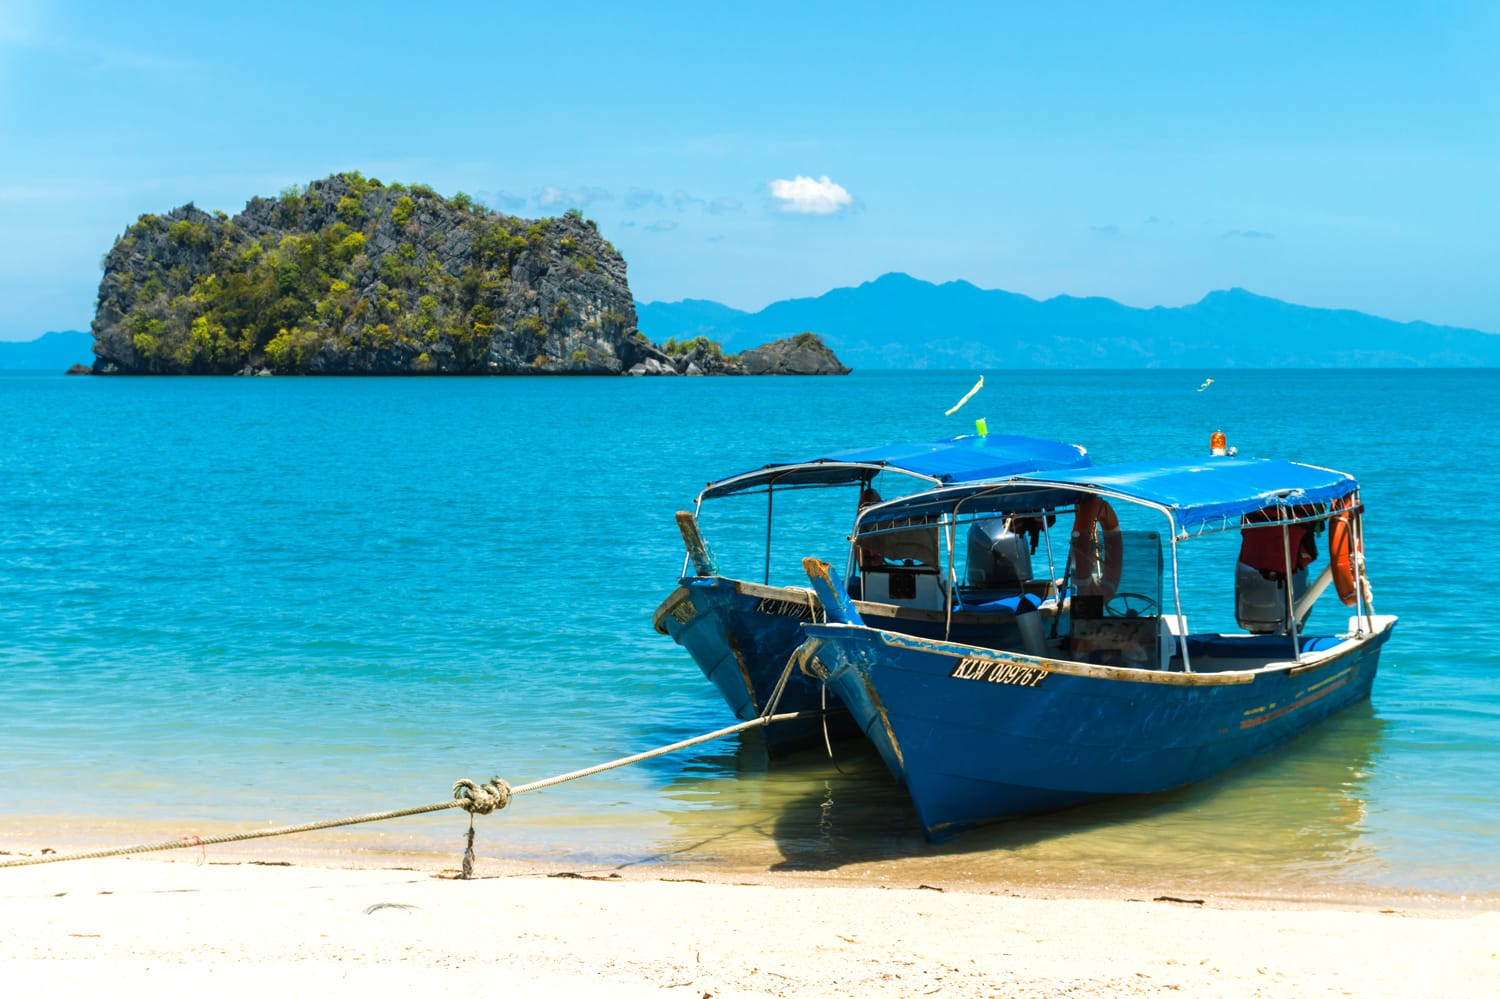 Boats for excursion on the beach on the island of Langkawi, Malaysia